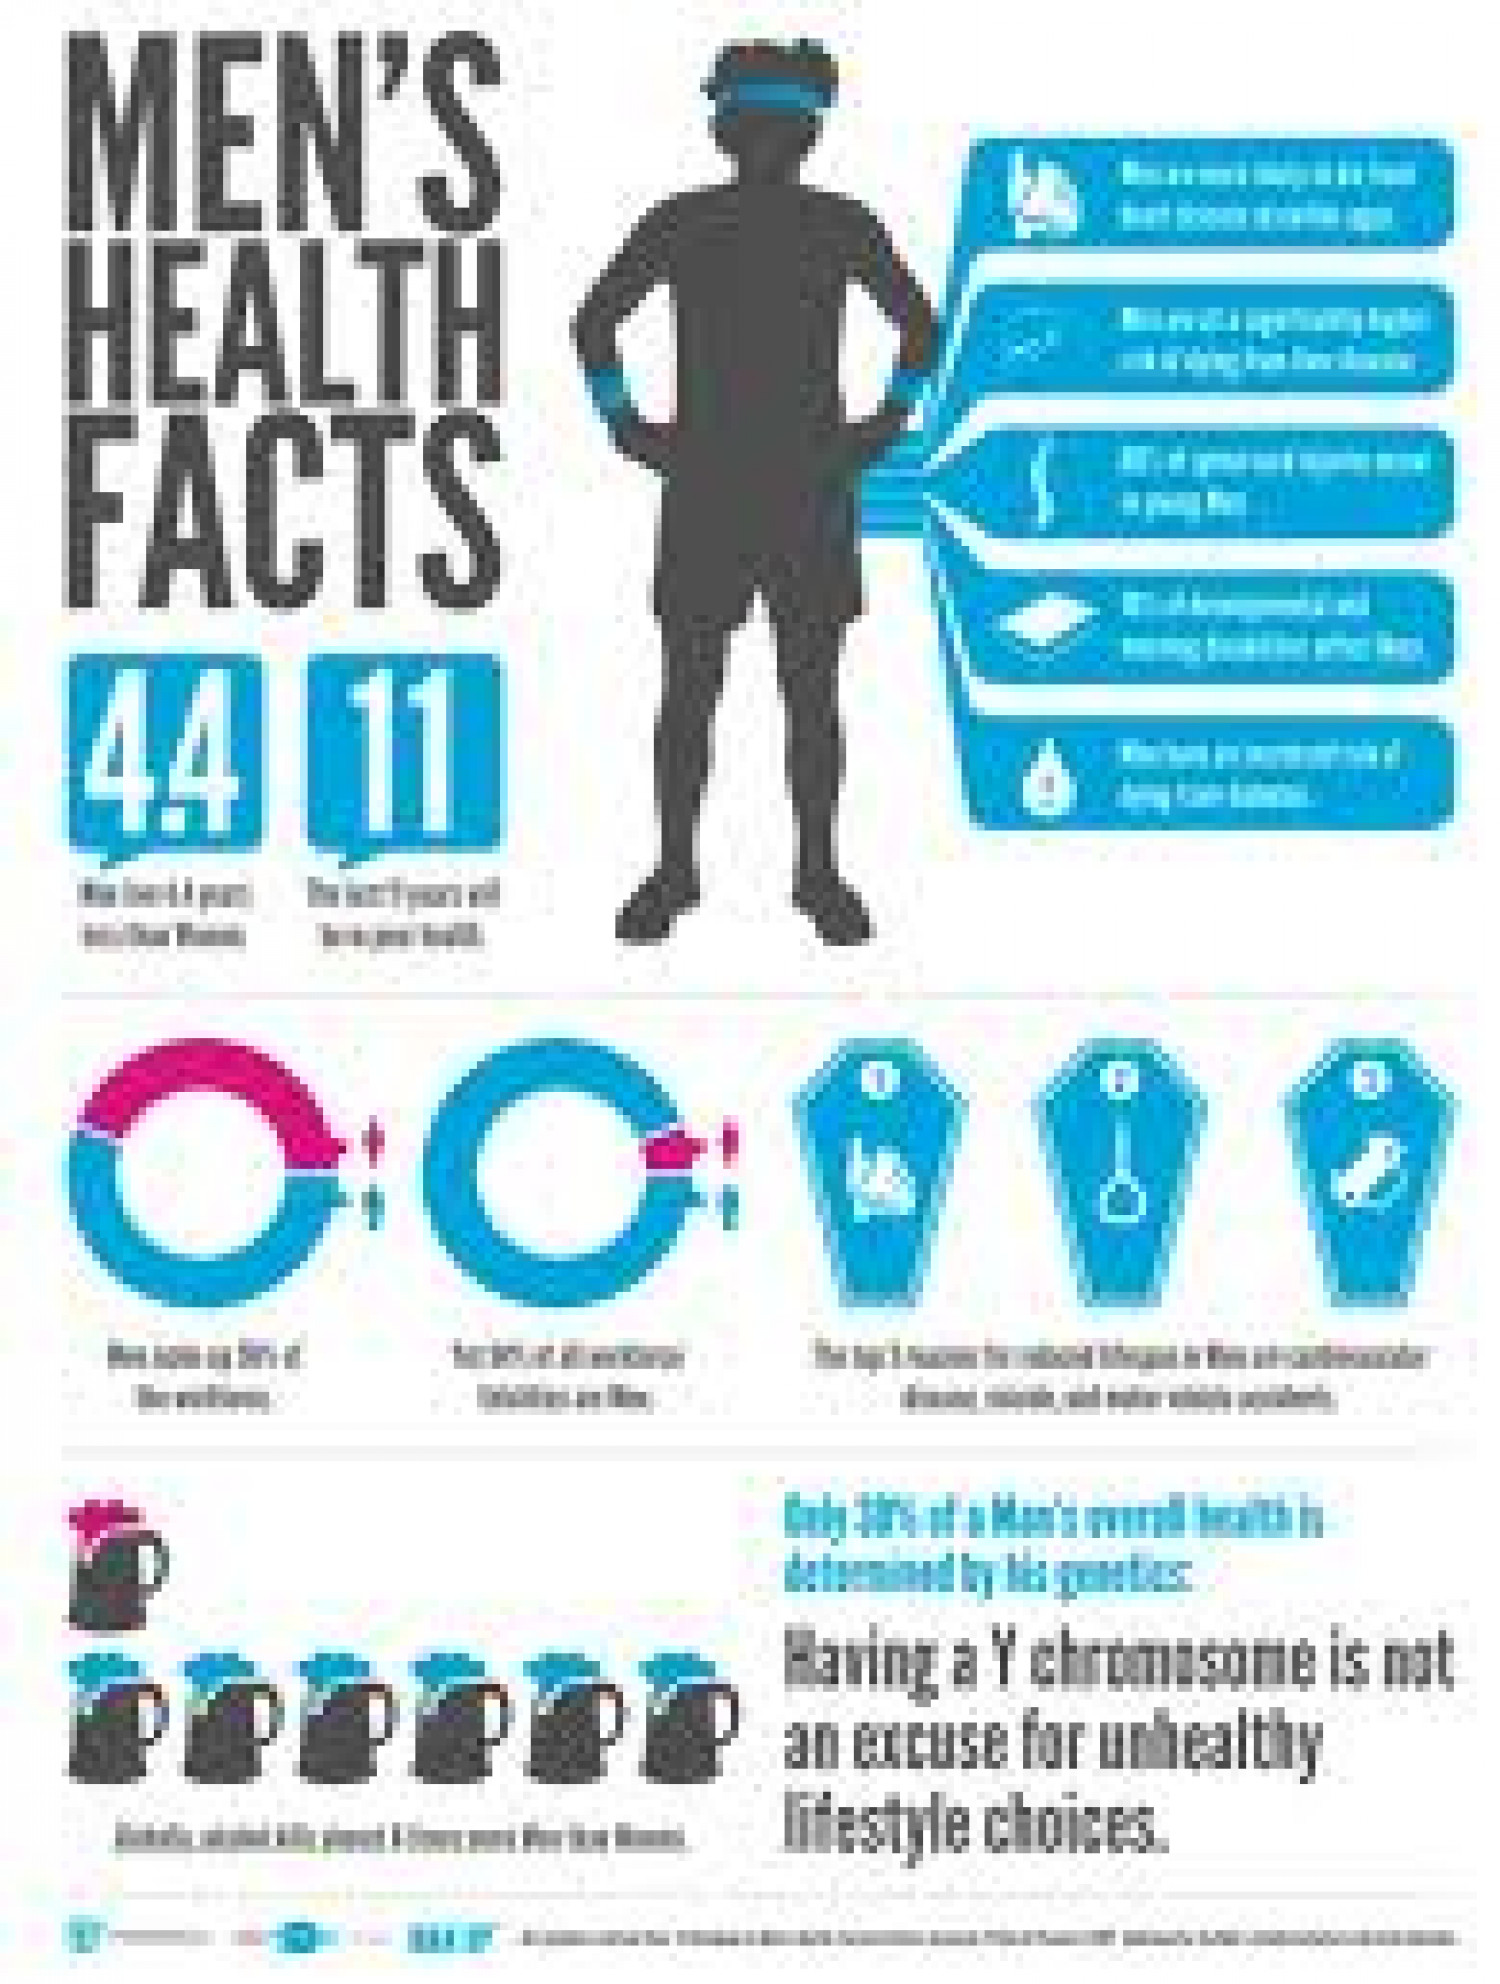 The latest Anti Aging News, Tips, Gossip and Product Reviews Infographic